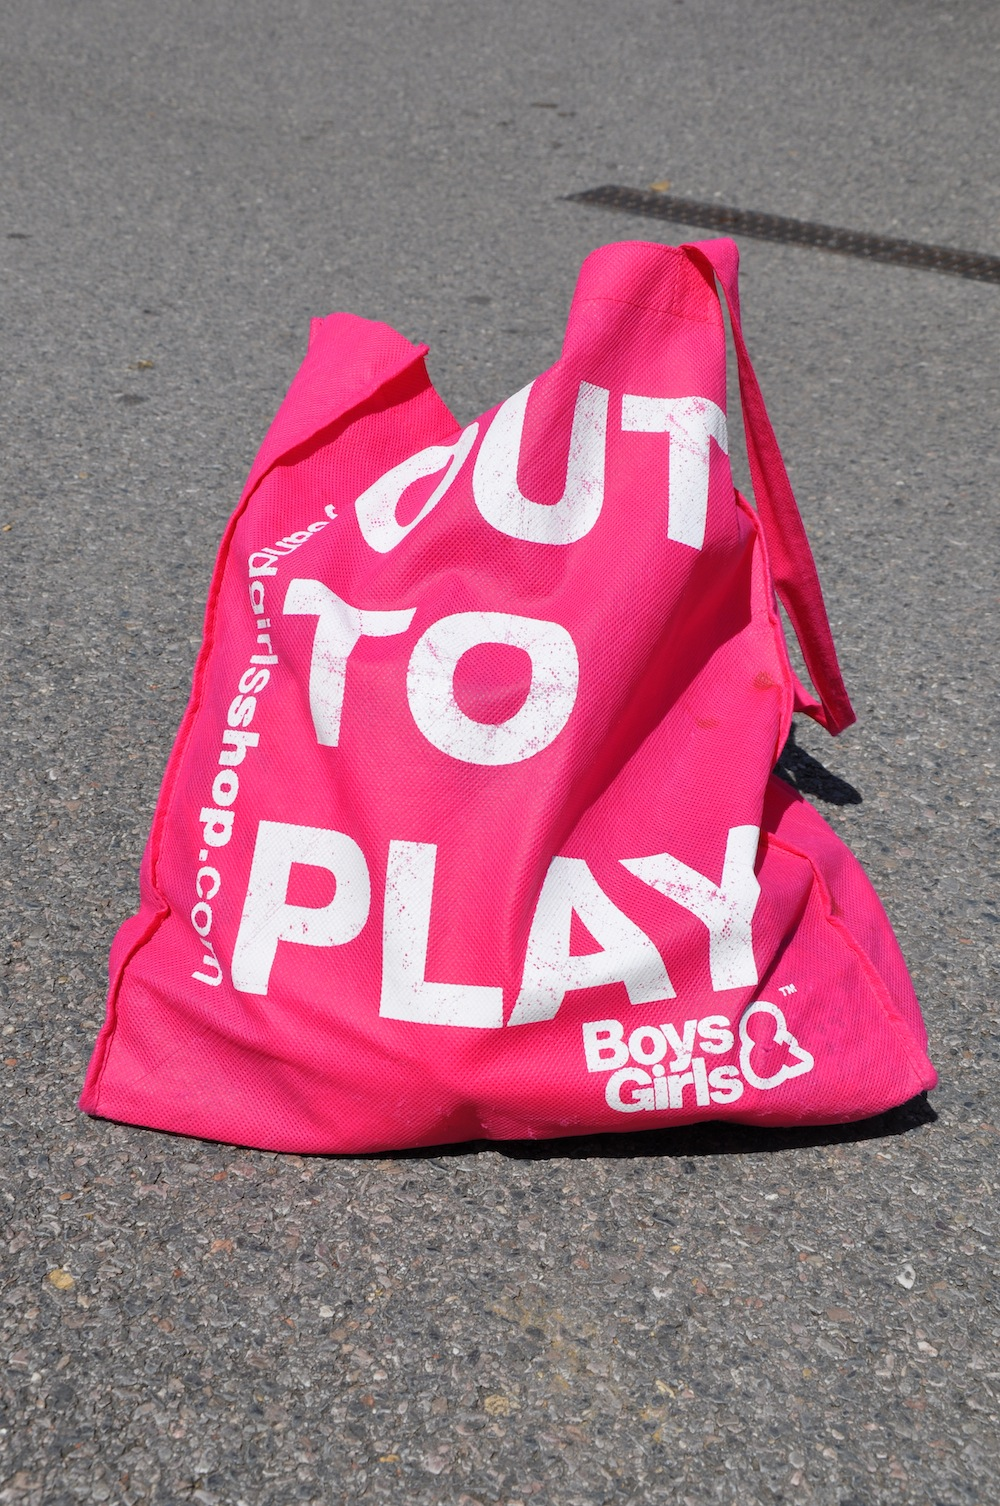 boys_girls_out_to_play_bag